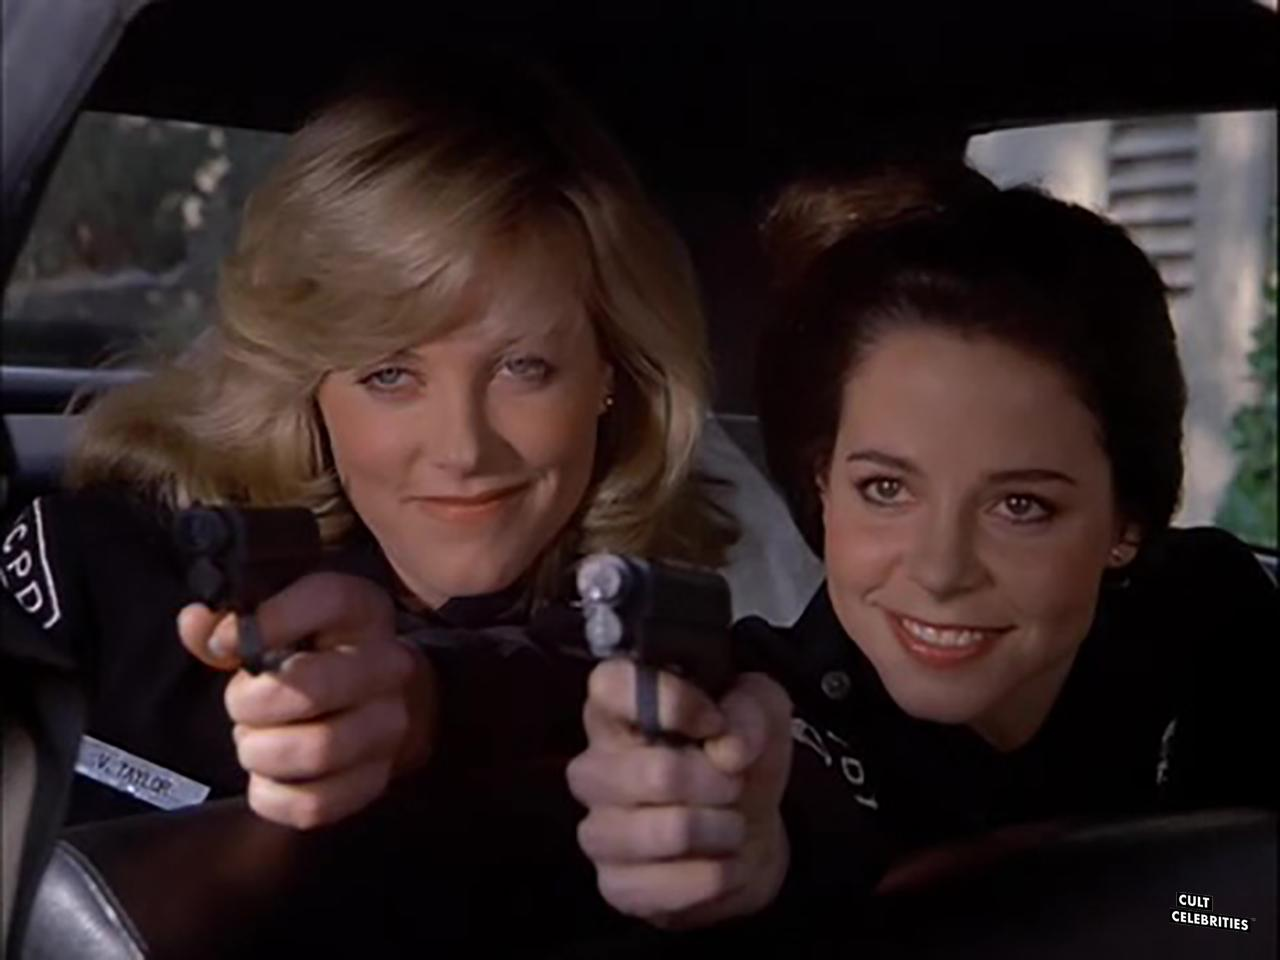 Debra Blee and April Clough in T.J. Hooker (1982)